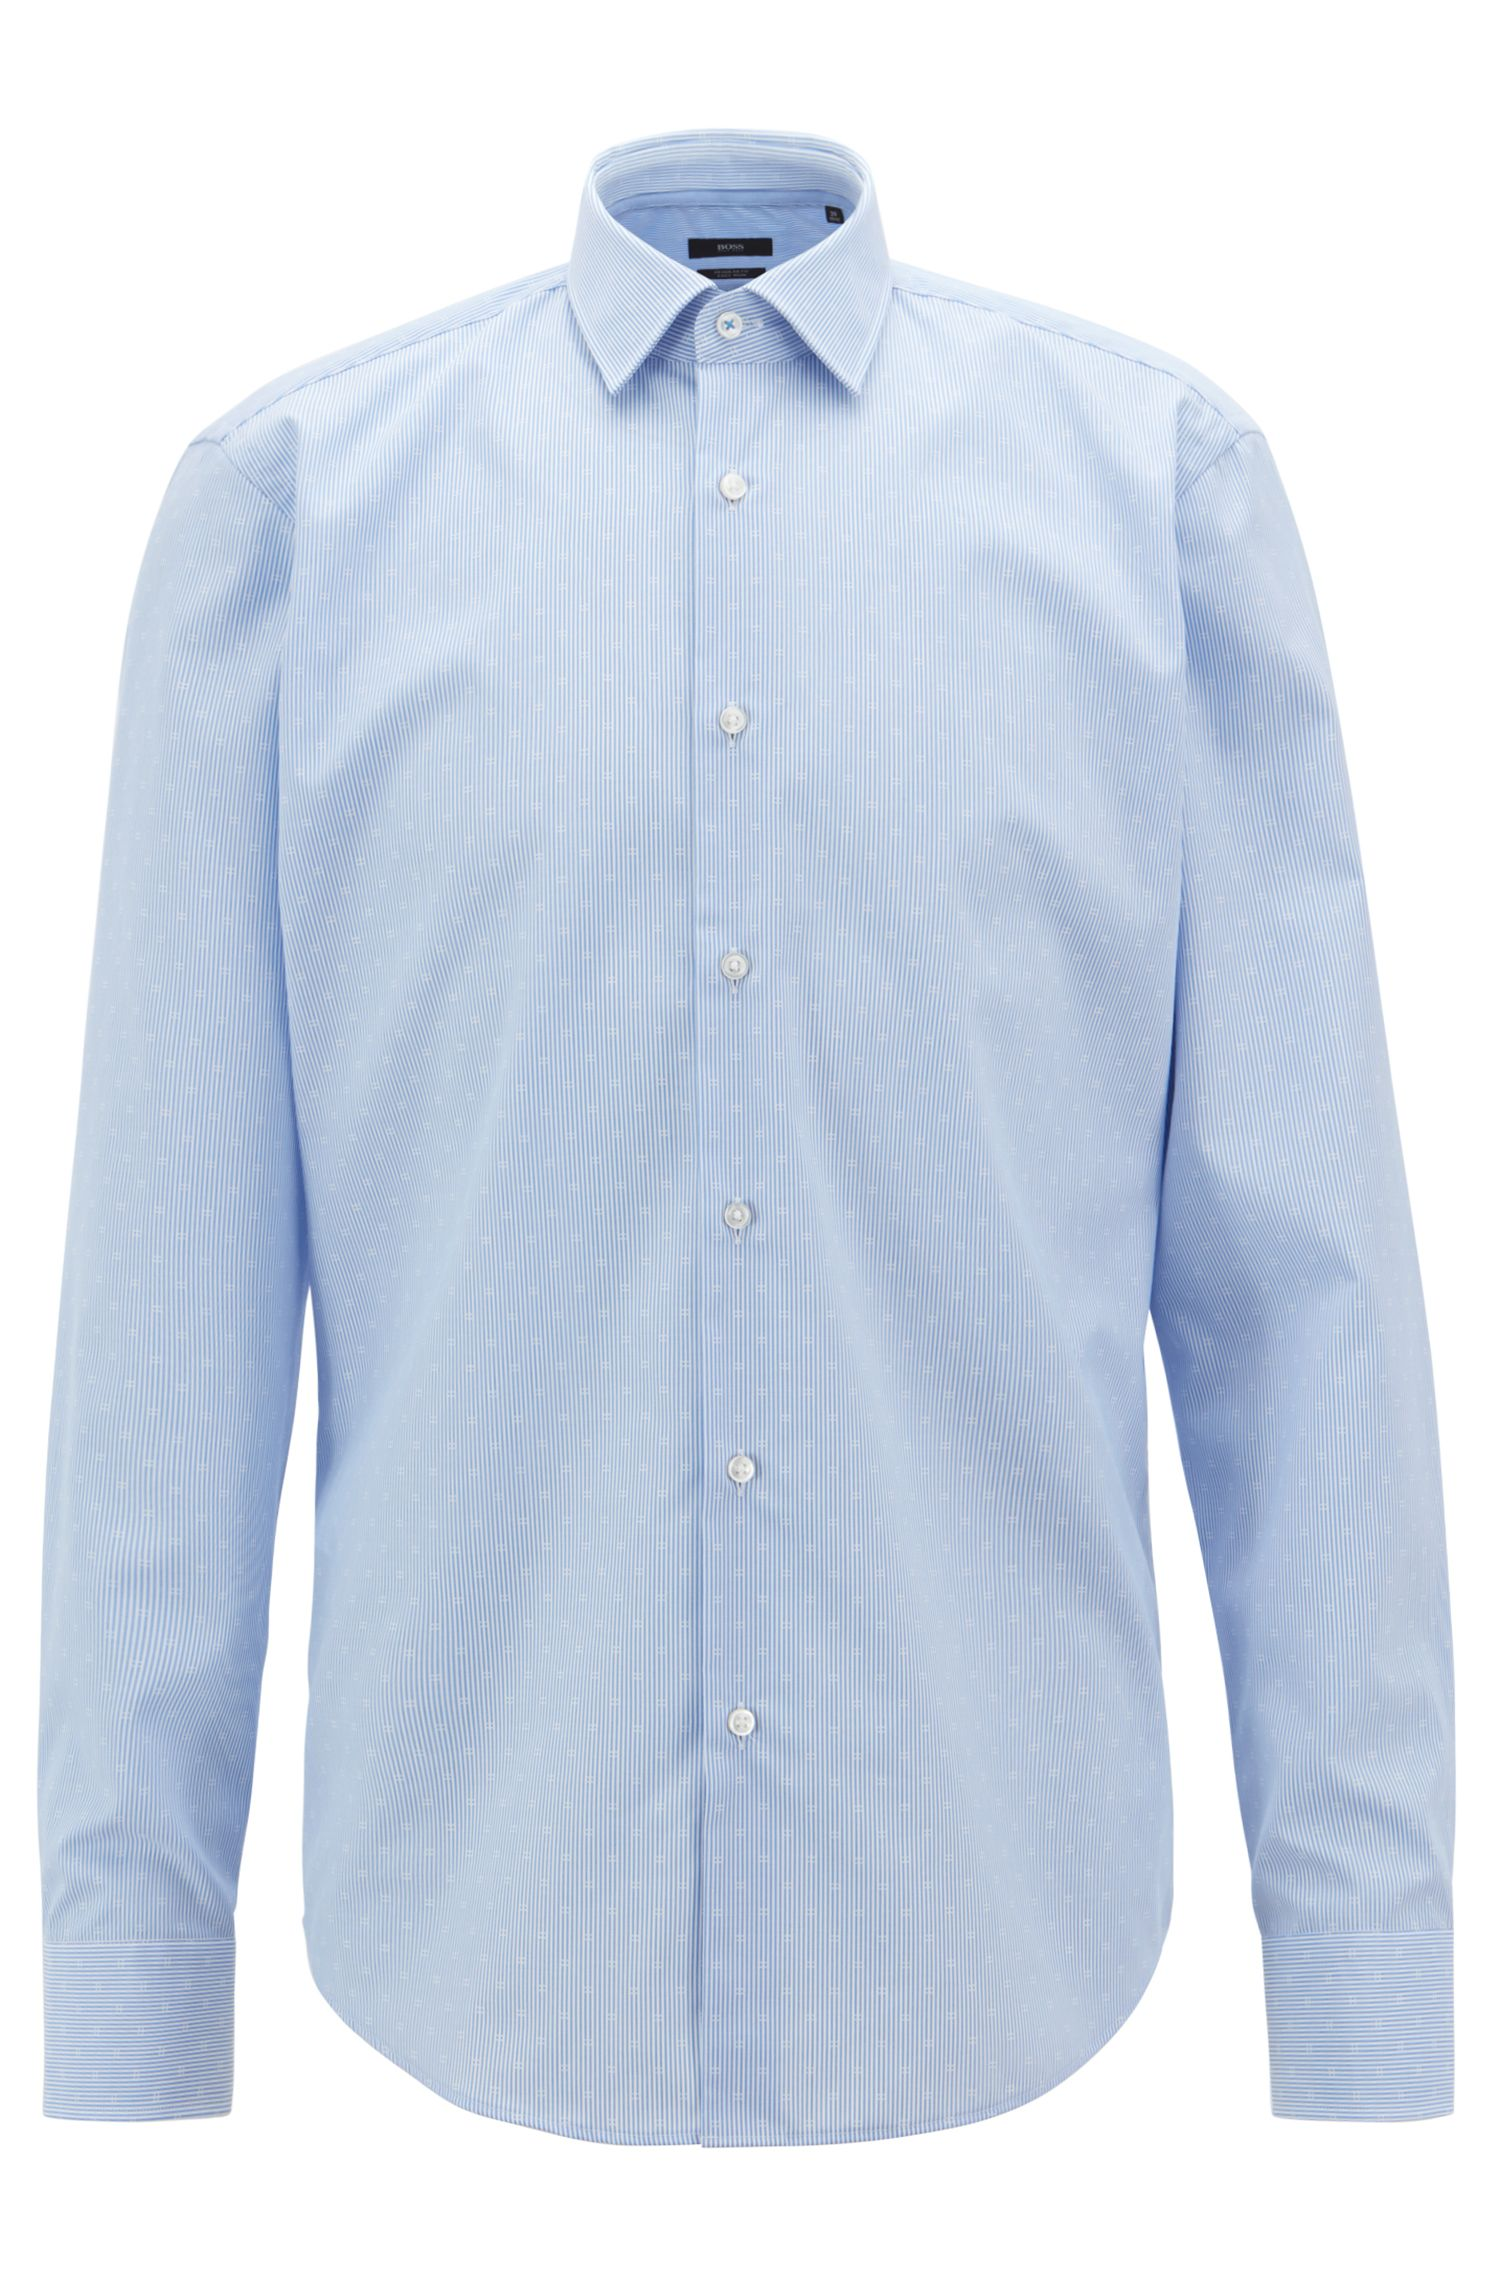 Regular-fit shirt in easy-iron dobby cotton poplin, Light Blue